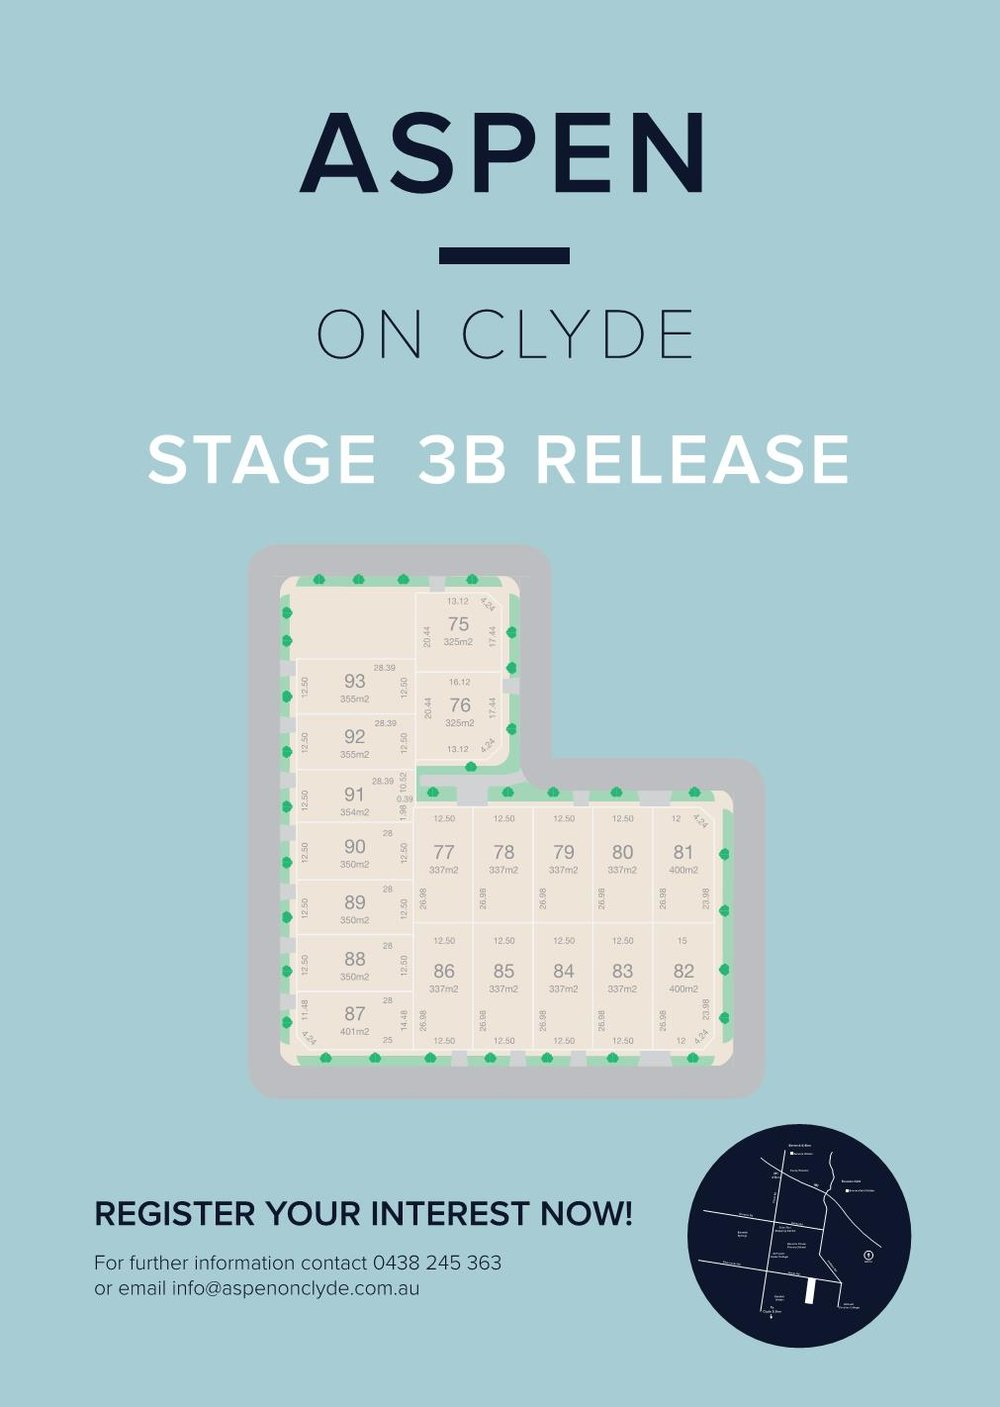 Latest release stage 3b - 06/10/2018Exciting news! Our Stage 3B is on the market with an assortment of awesome packages from our amazing builders. For more information, call us on 0438 245 363